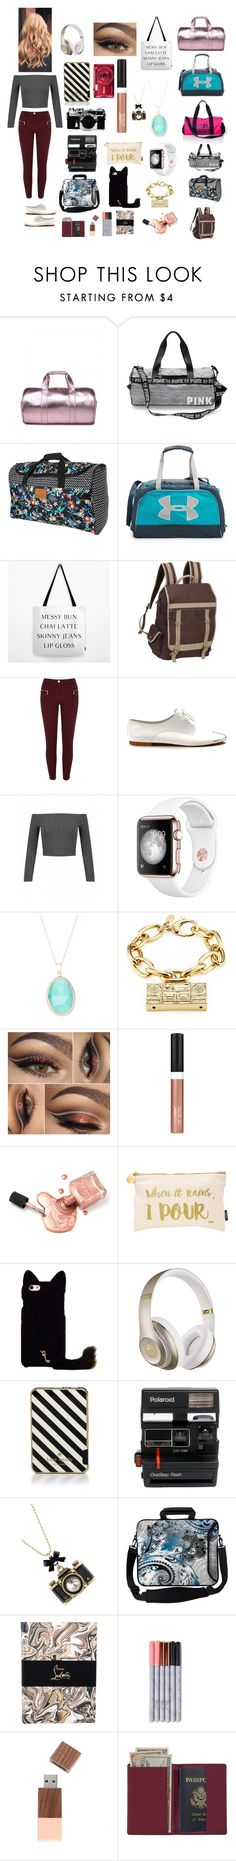 """Chloe Bennet (reporter)"" by karabear3256 ❤ liked on Polyvore featuring Billabong, Under Armour, Preferred Nation, River Island, Shoes of Prey, Moschino, Wet n Wild, Nails Inc., Beats by Dr. Dre and Kate Spade"